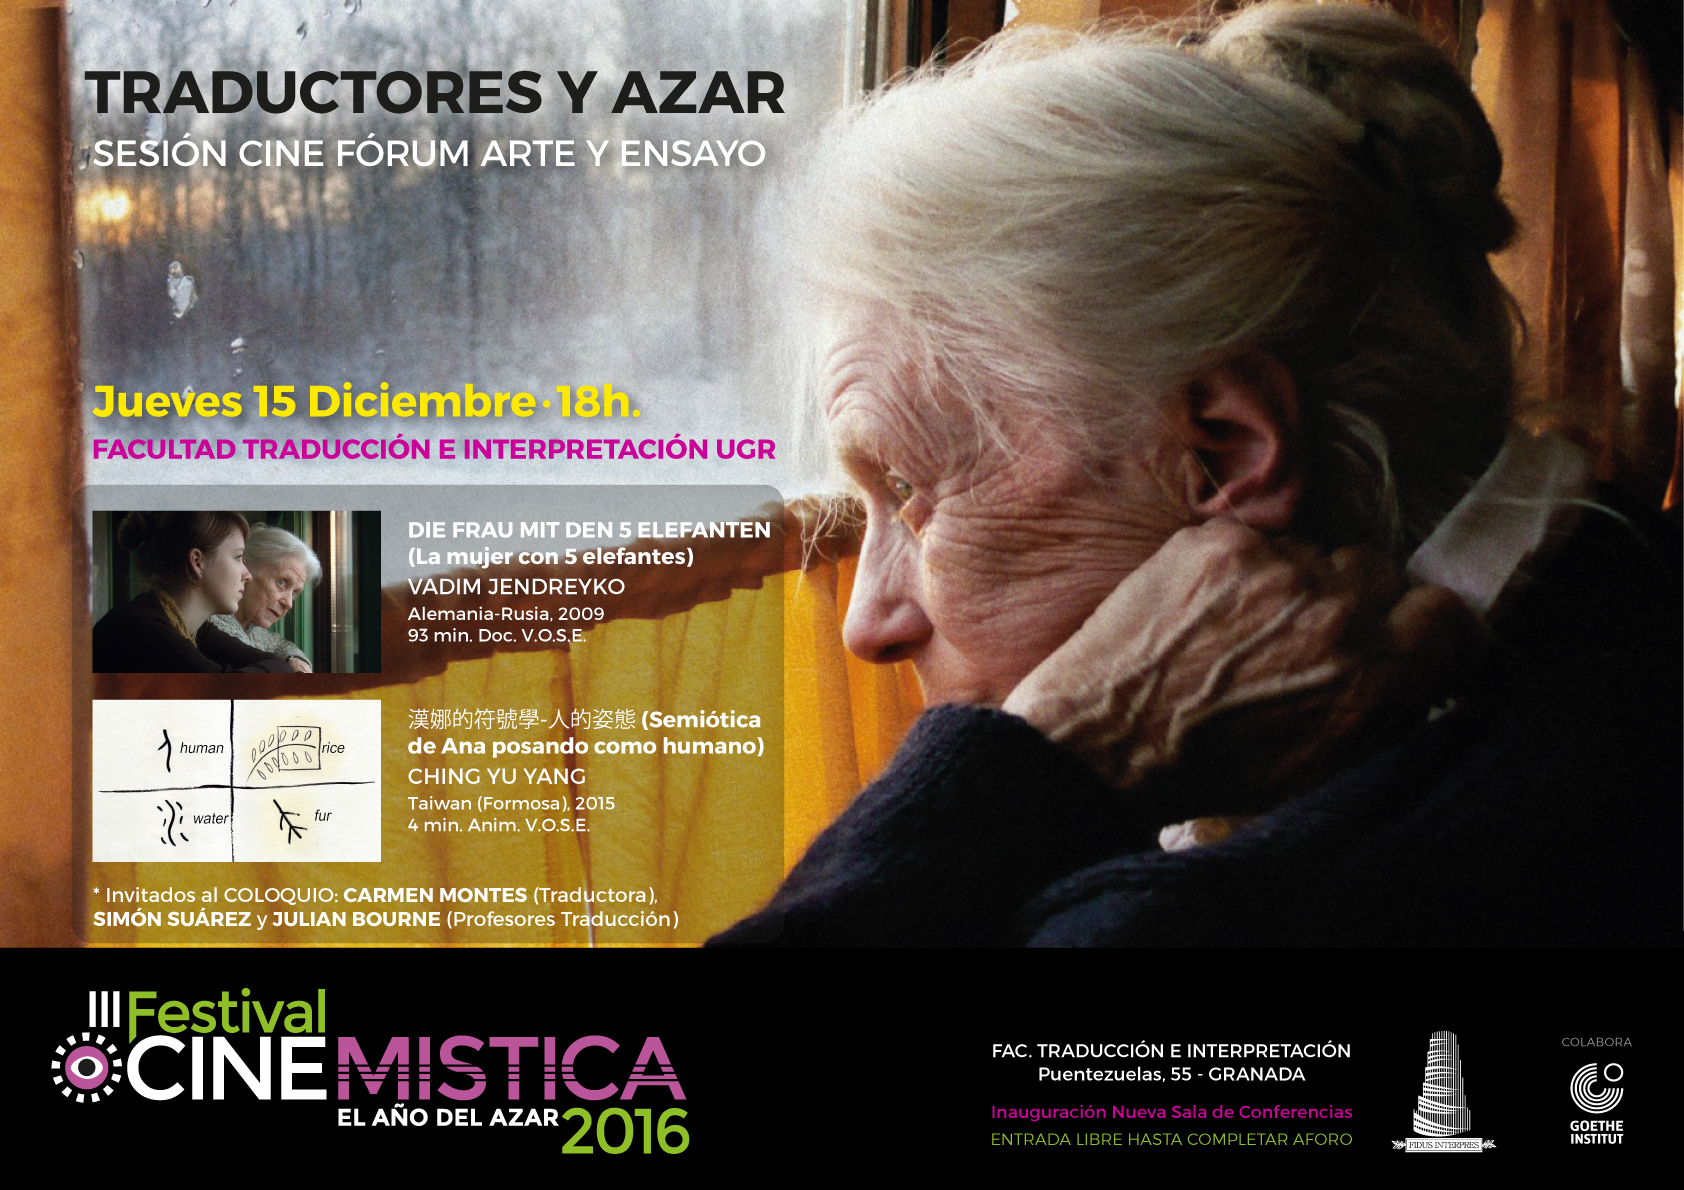 cartel_traductores-y-azar